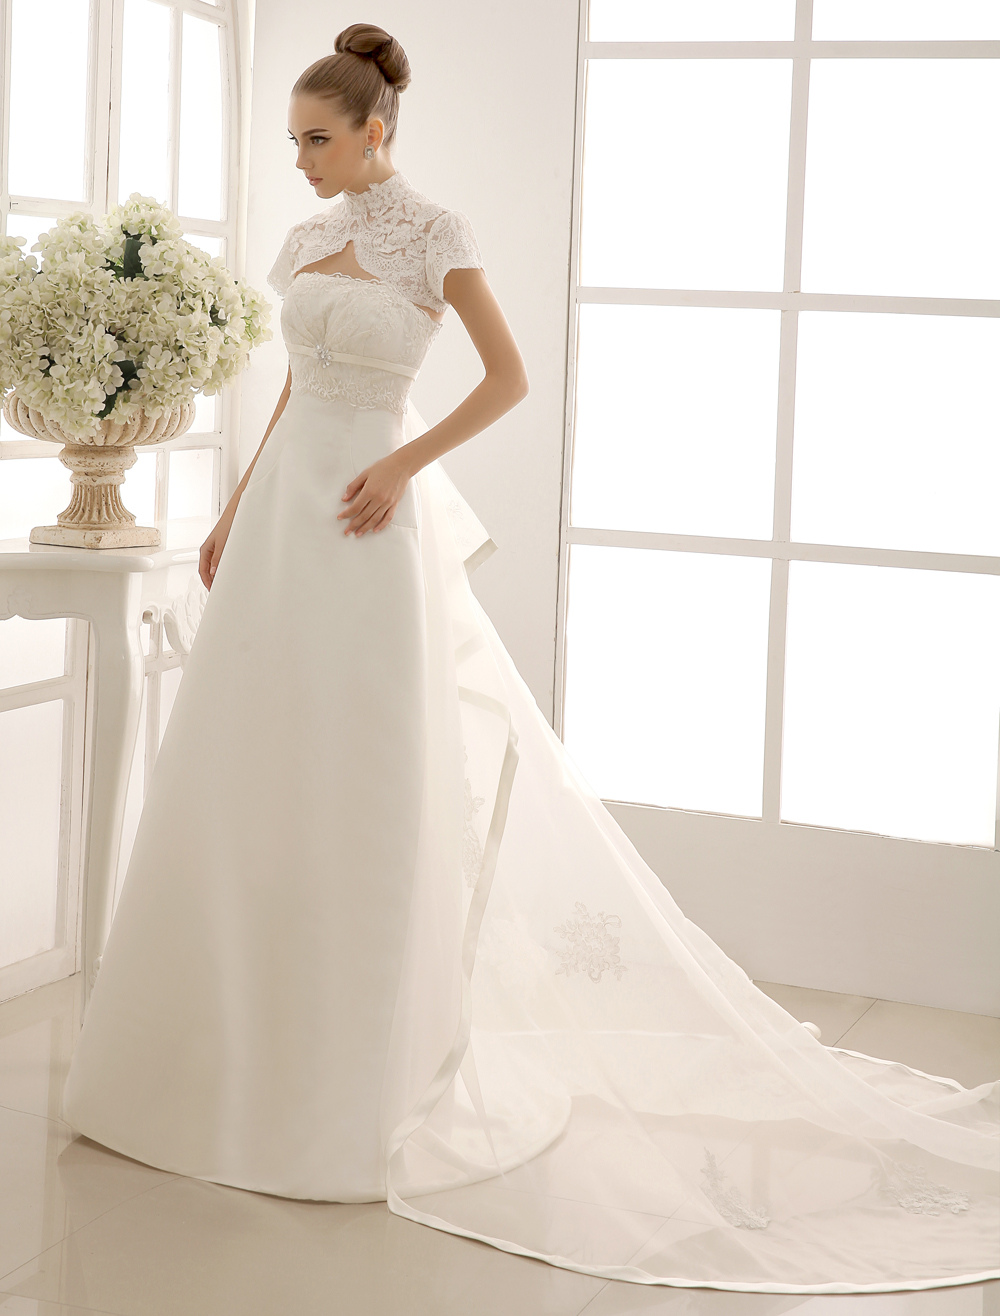 High-waisted Panel Train Wedding Dress With Lace Milanoo